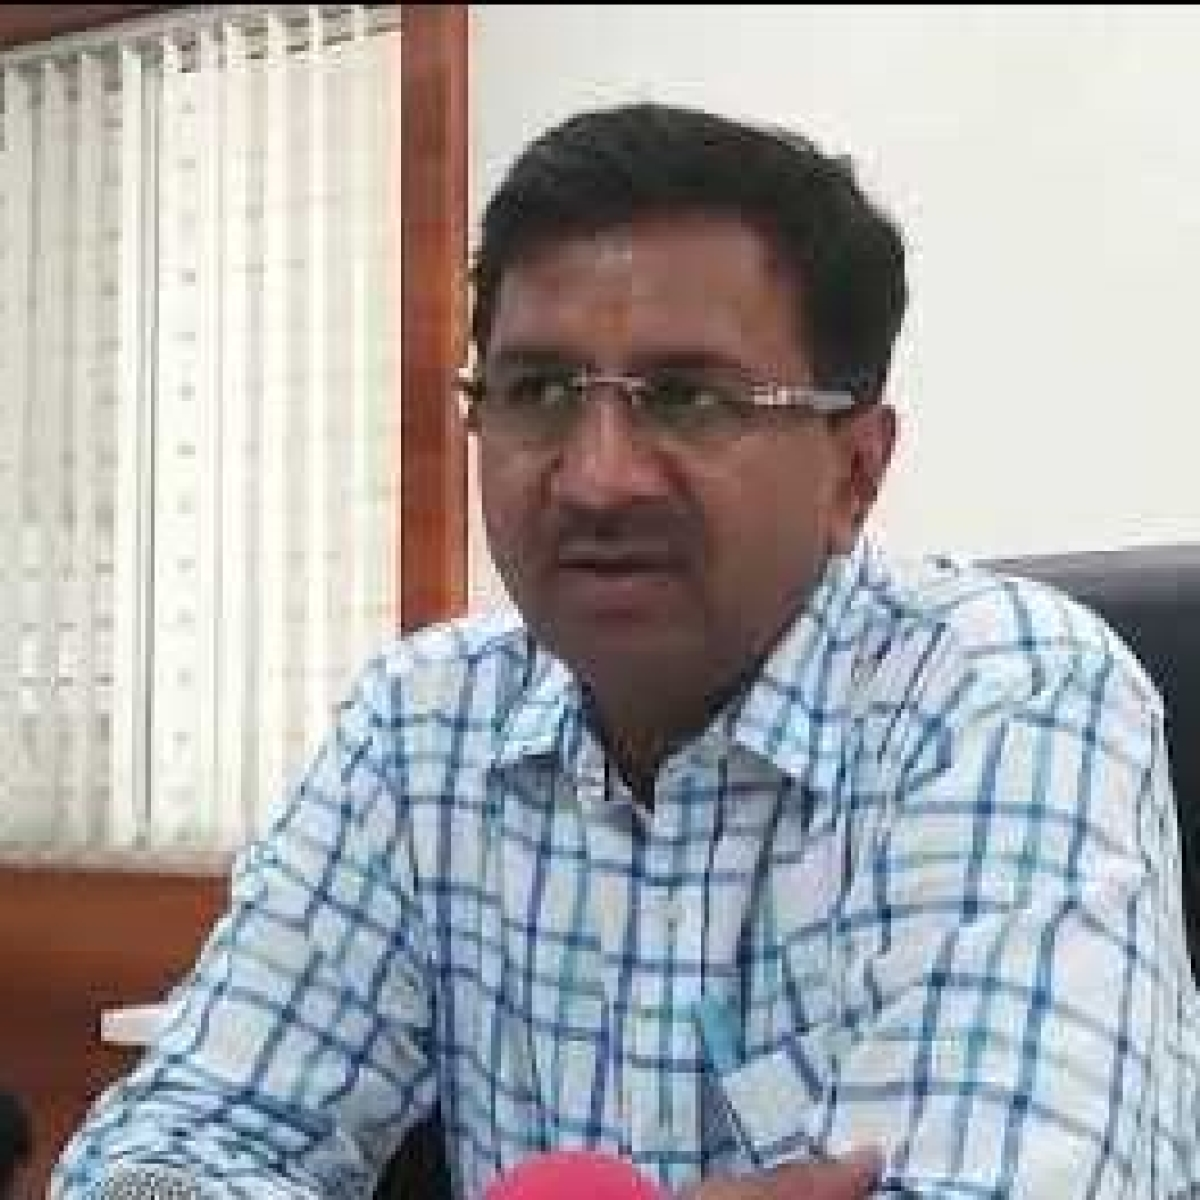 Coronavirus in Indore: Things may change in 7 to 10 days, says Collector Manish Singh